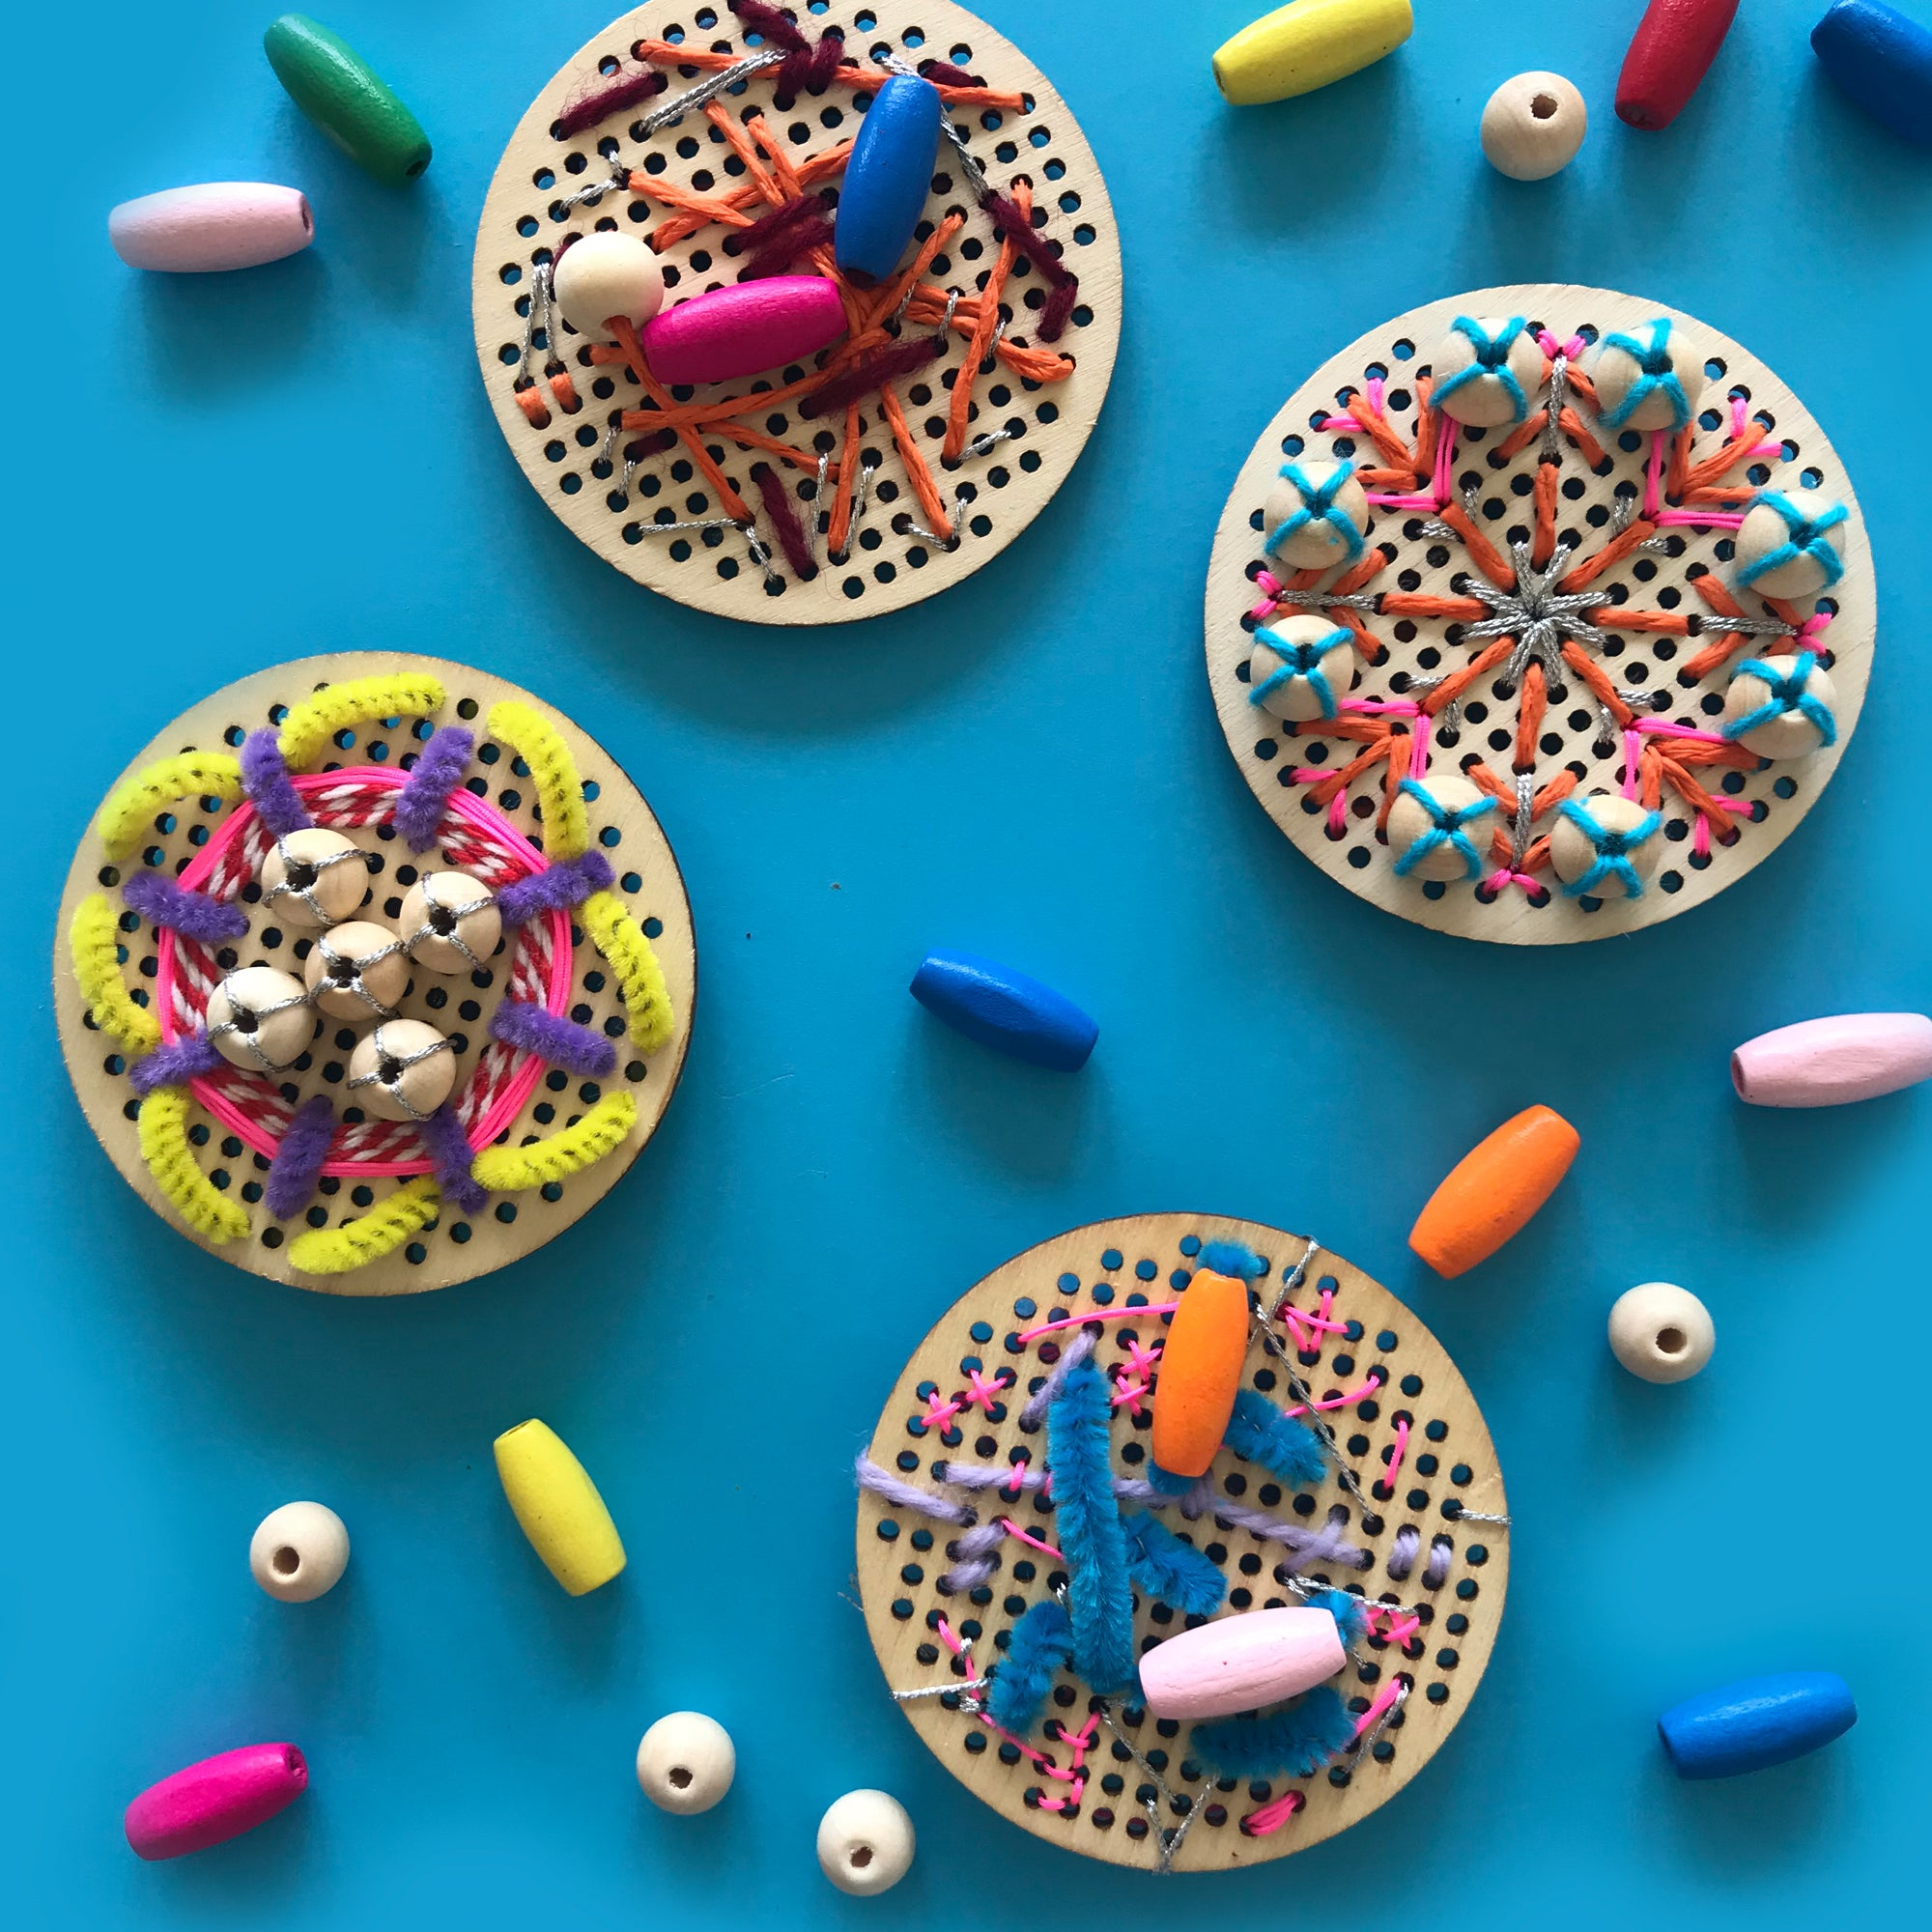 Kids embroidery onto wooden discs